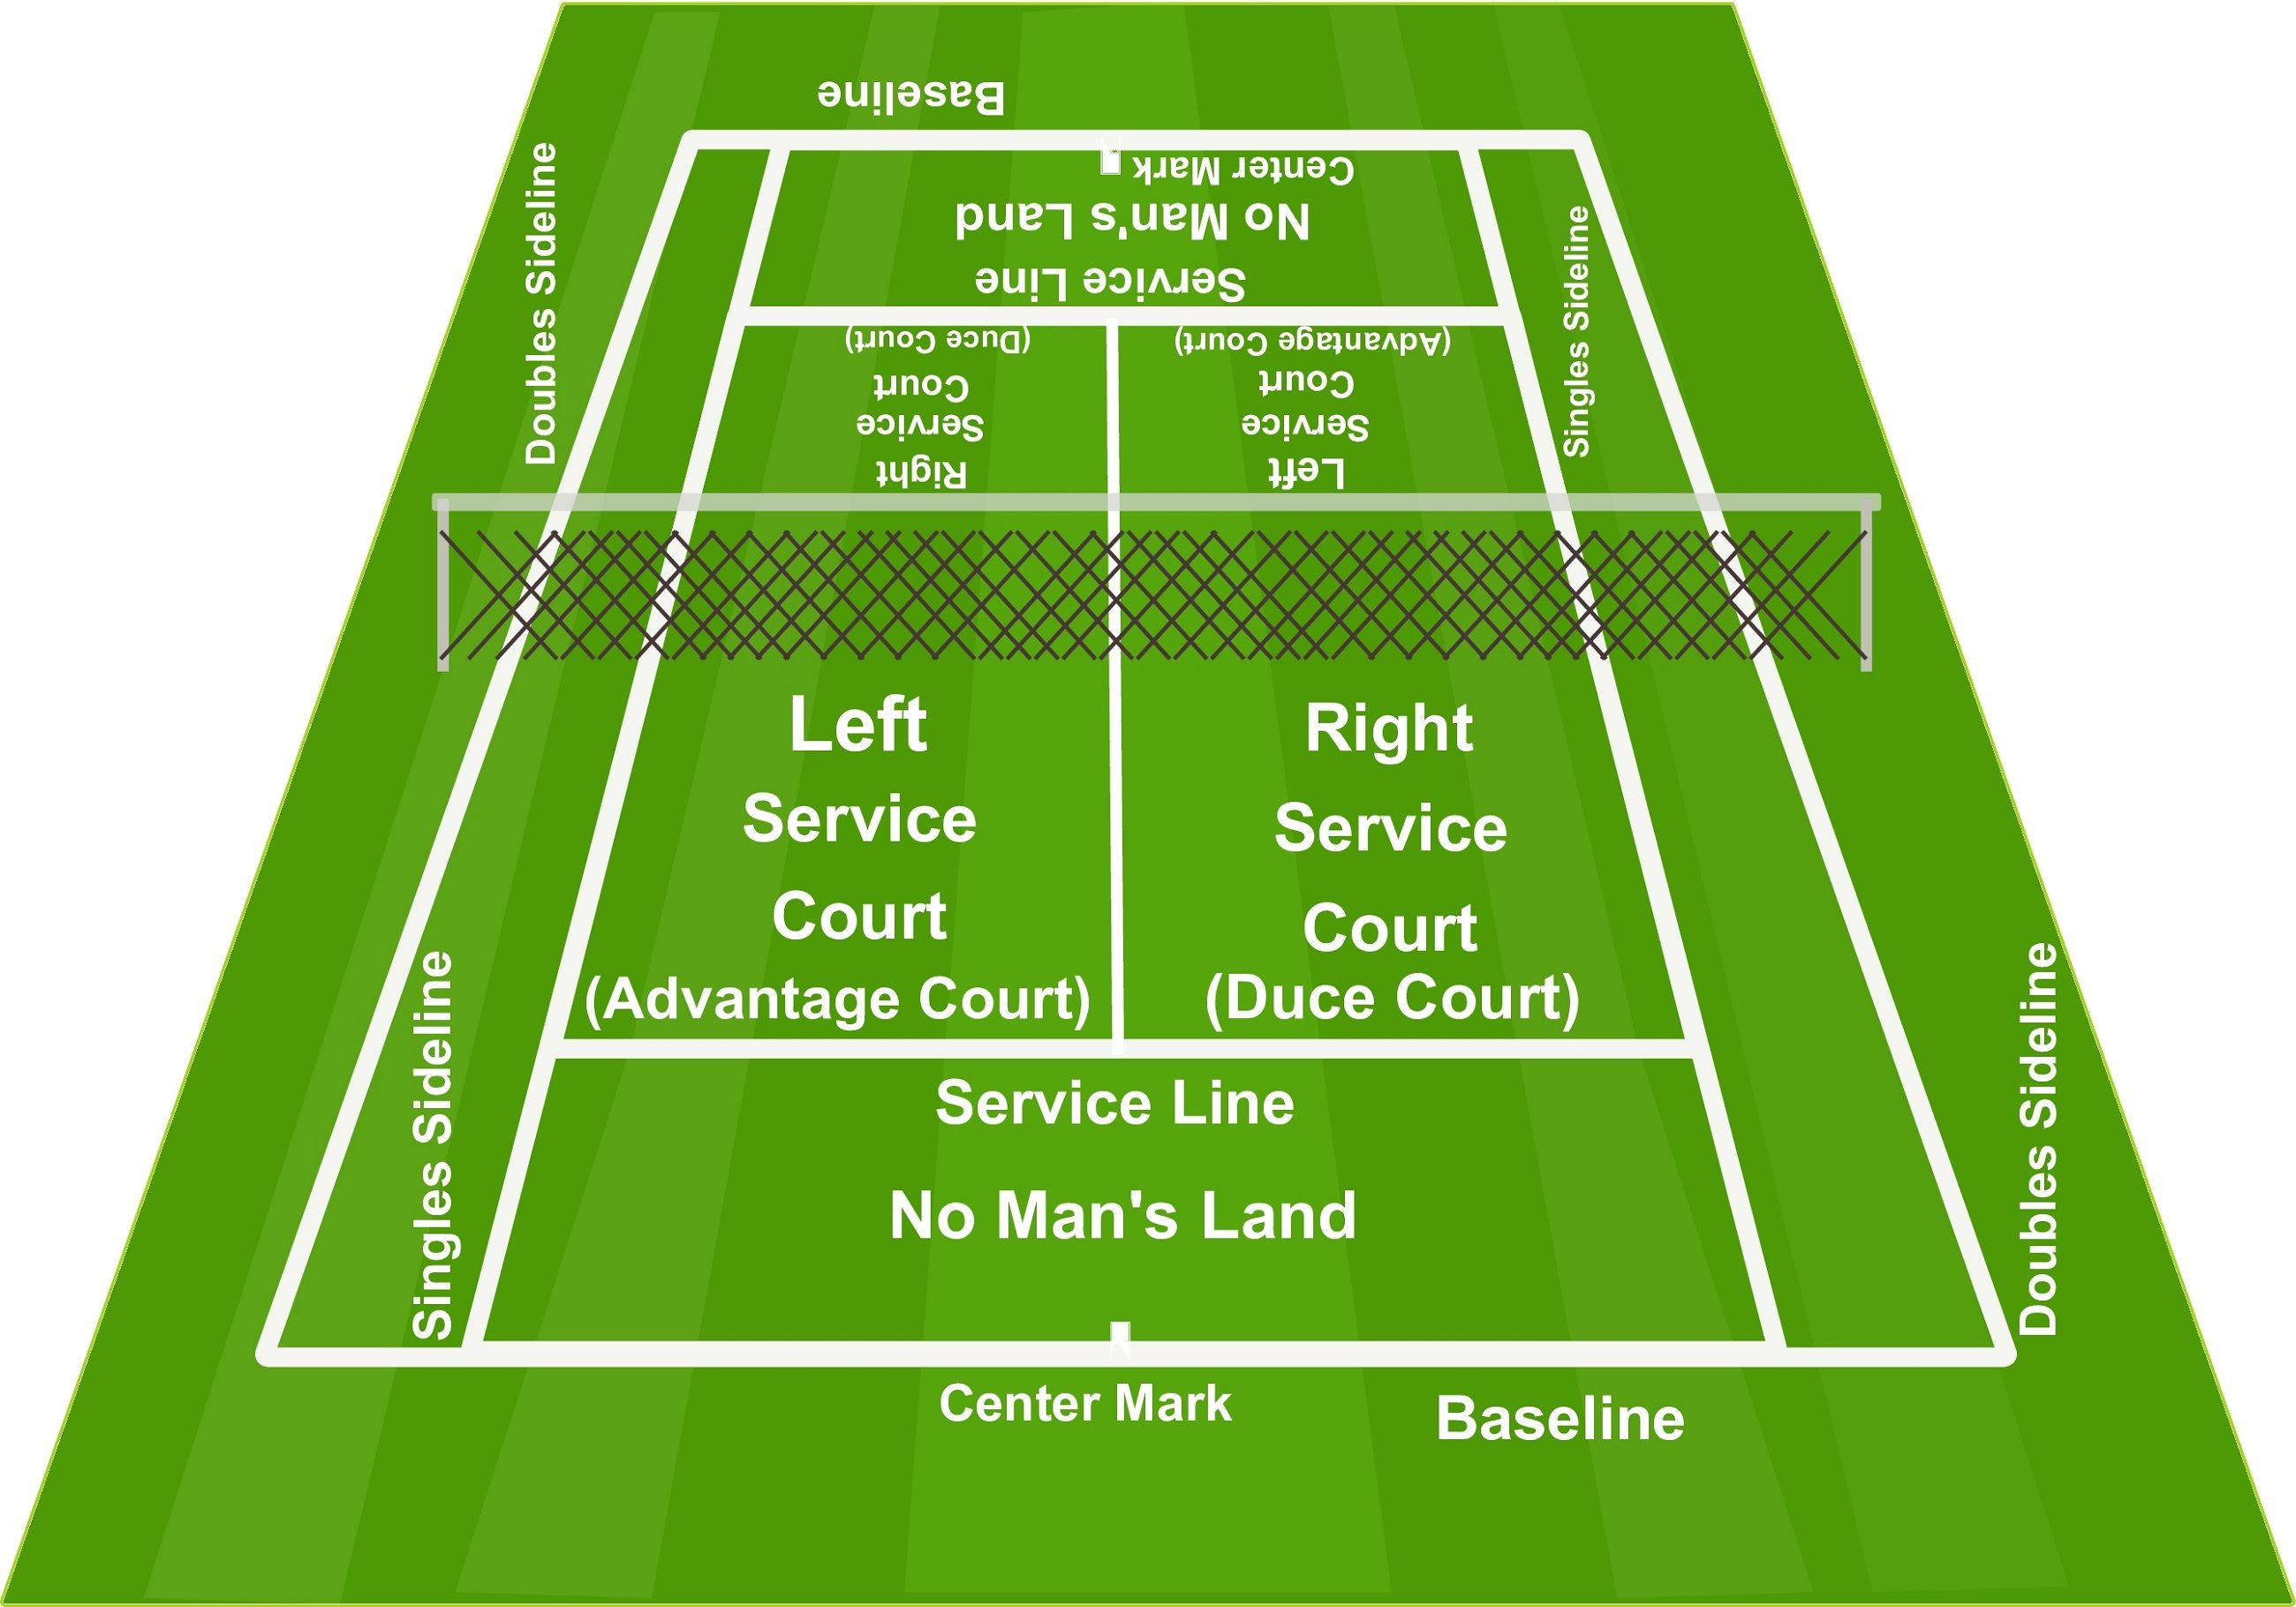 tennis court diagram labeled printable diagram printable diagram tennis court diagrams two court battery tennis court [ 2600 x 1820 Pixel ]